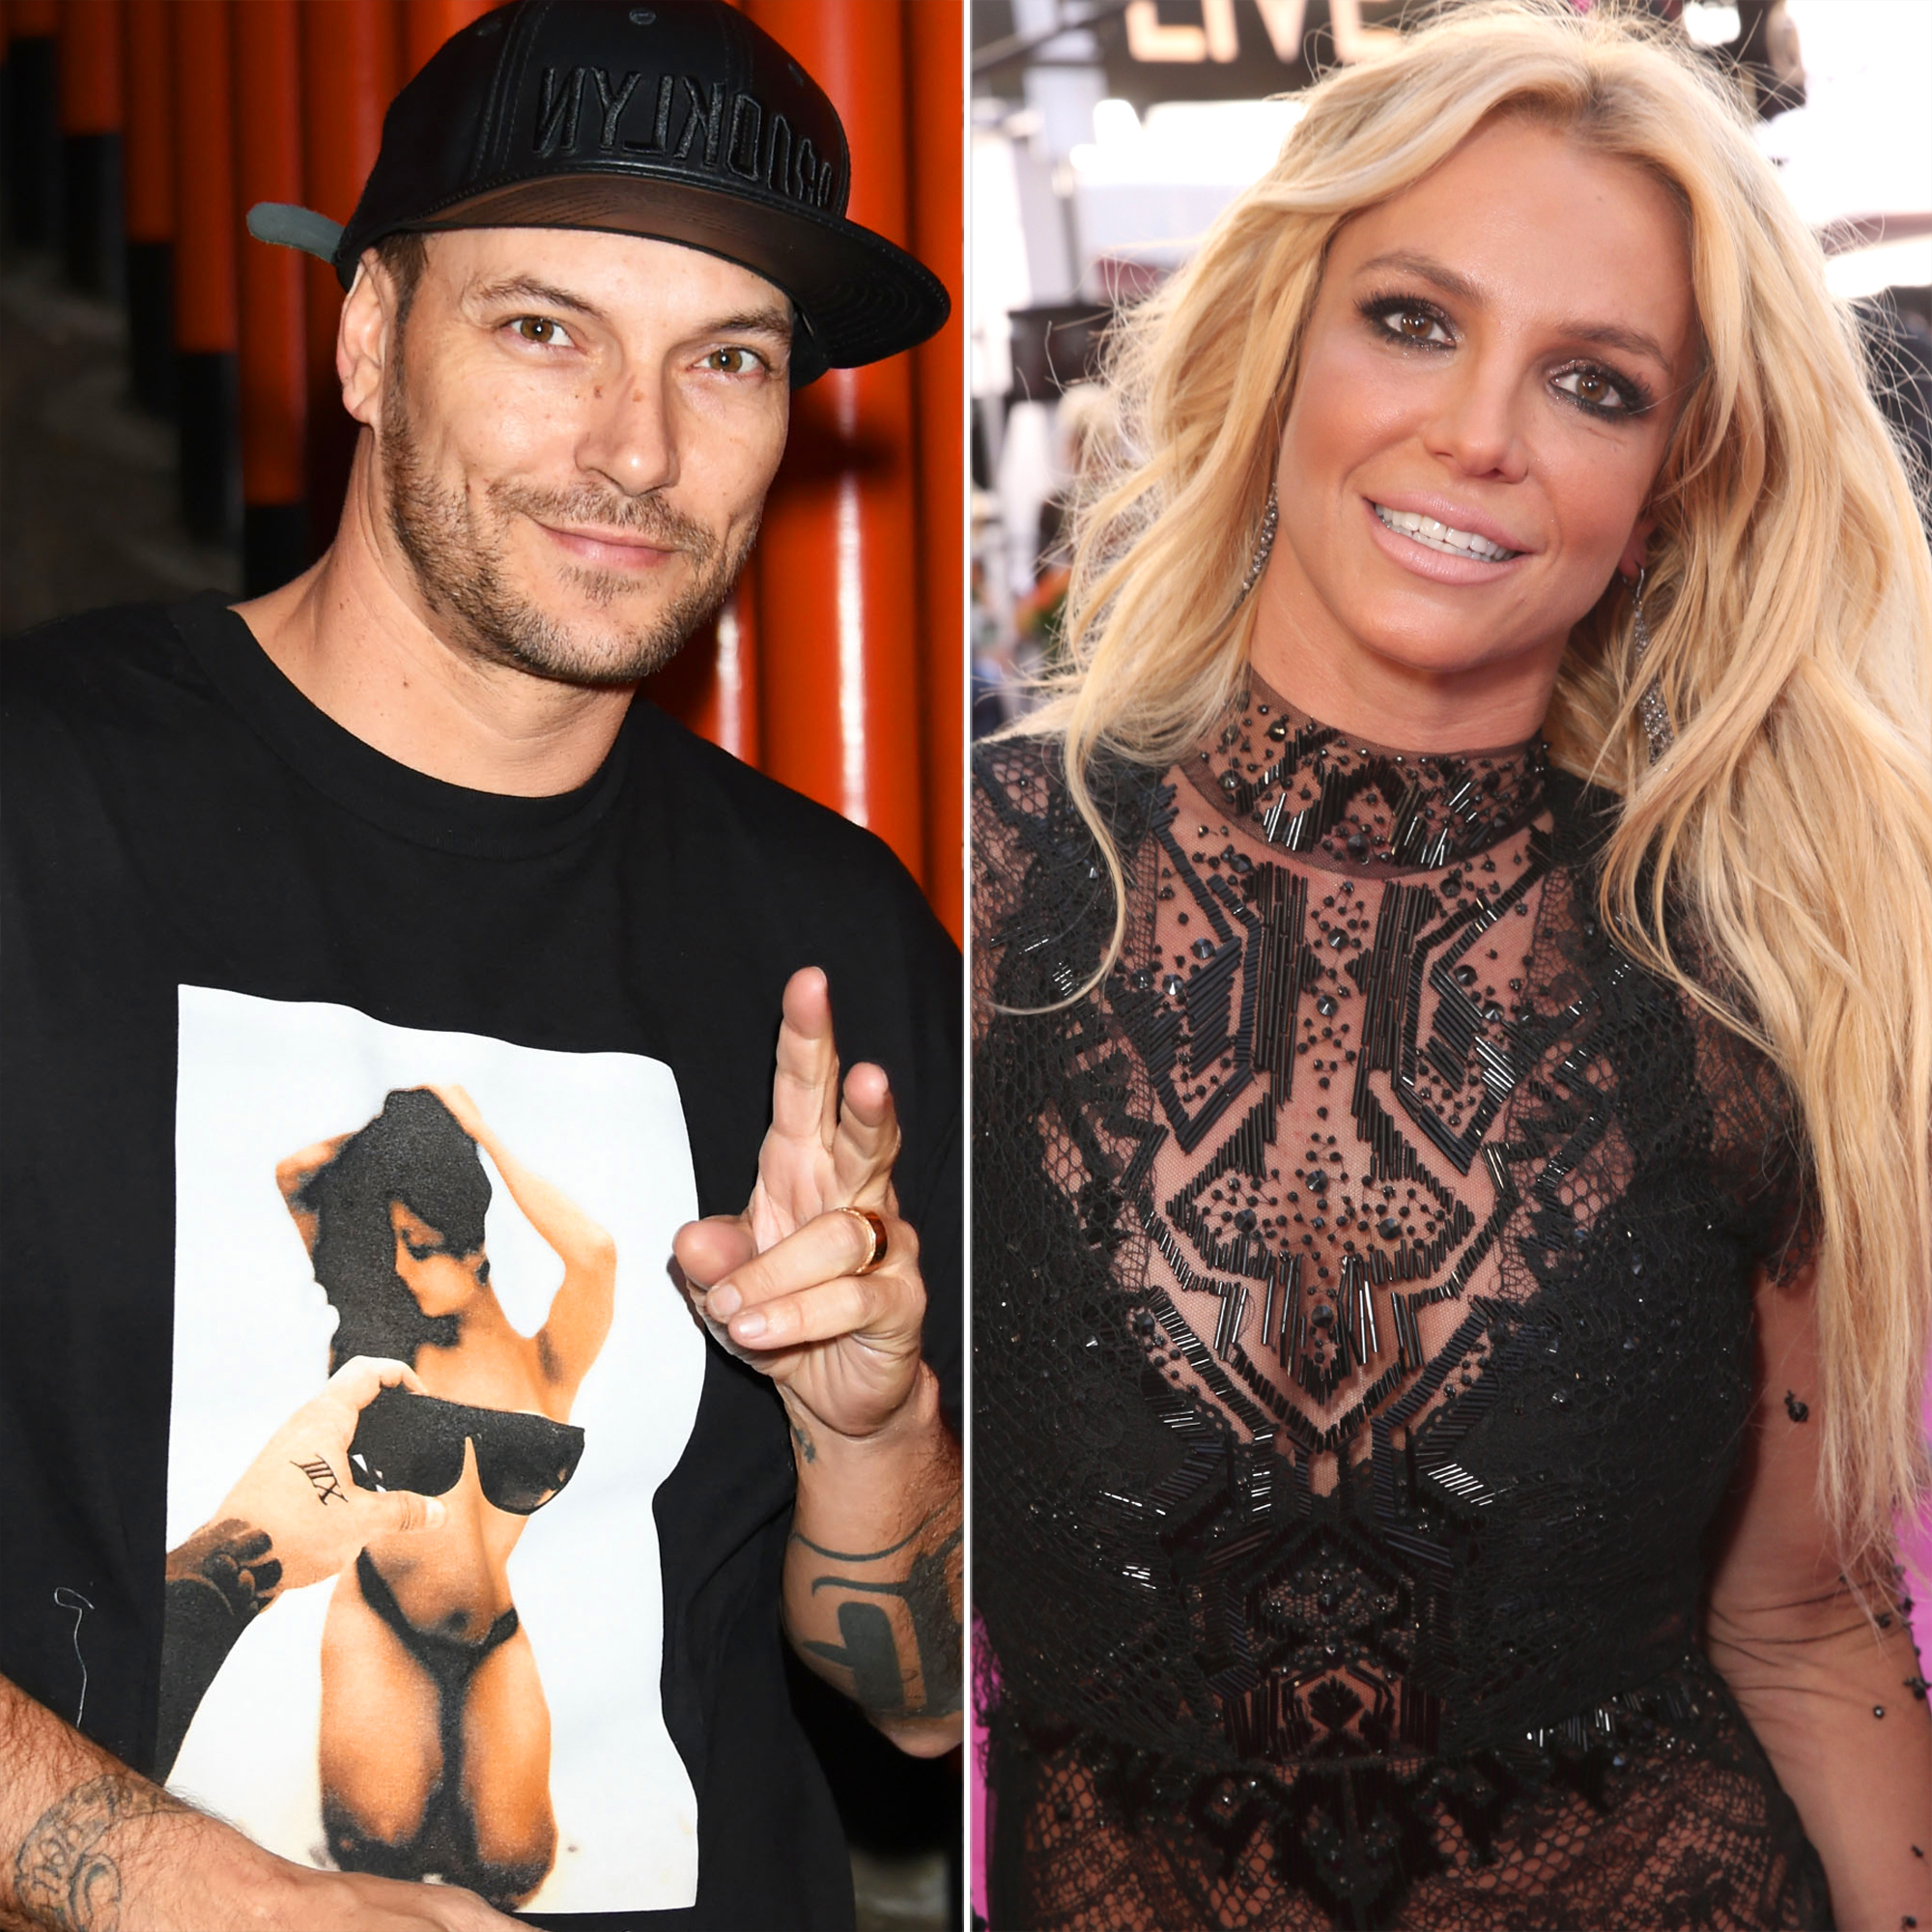 Kevin Federline still after Britney Spears' fortune